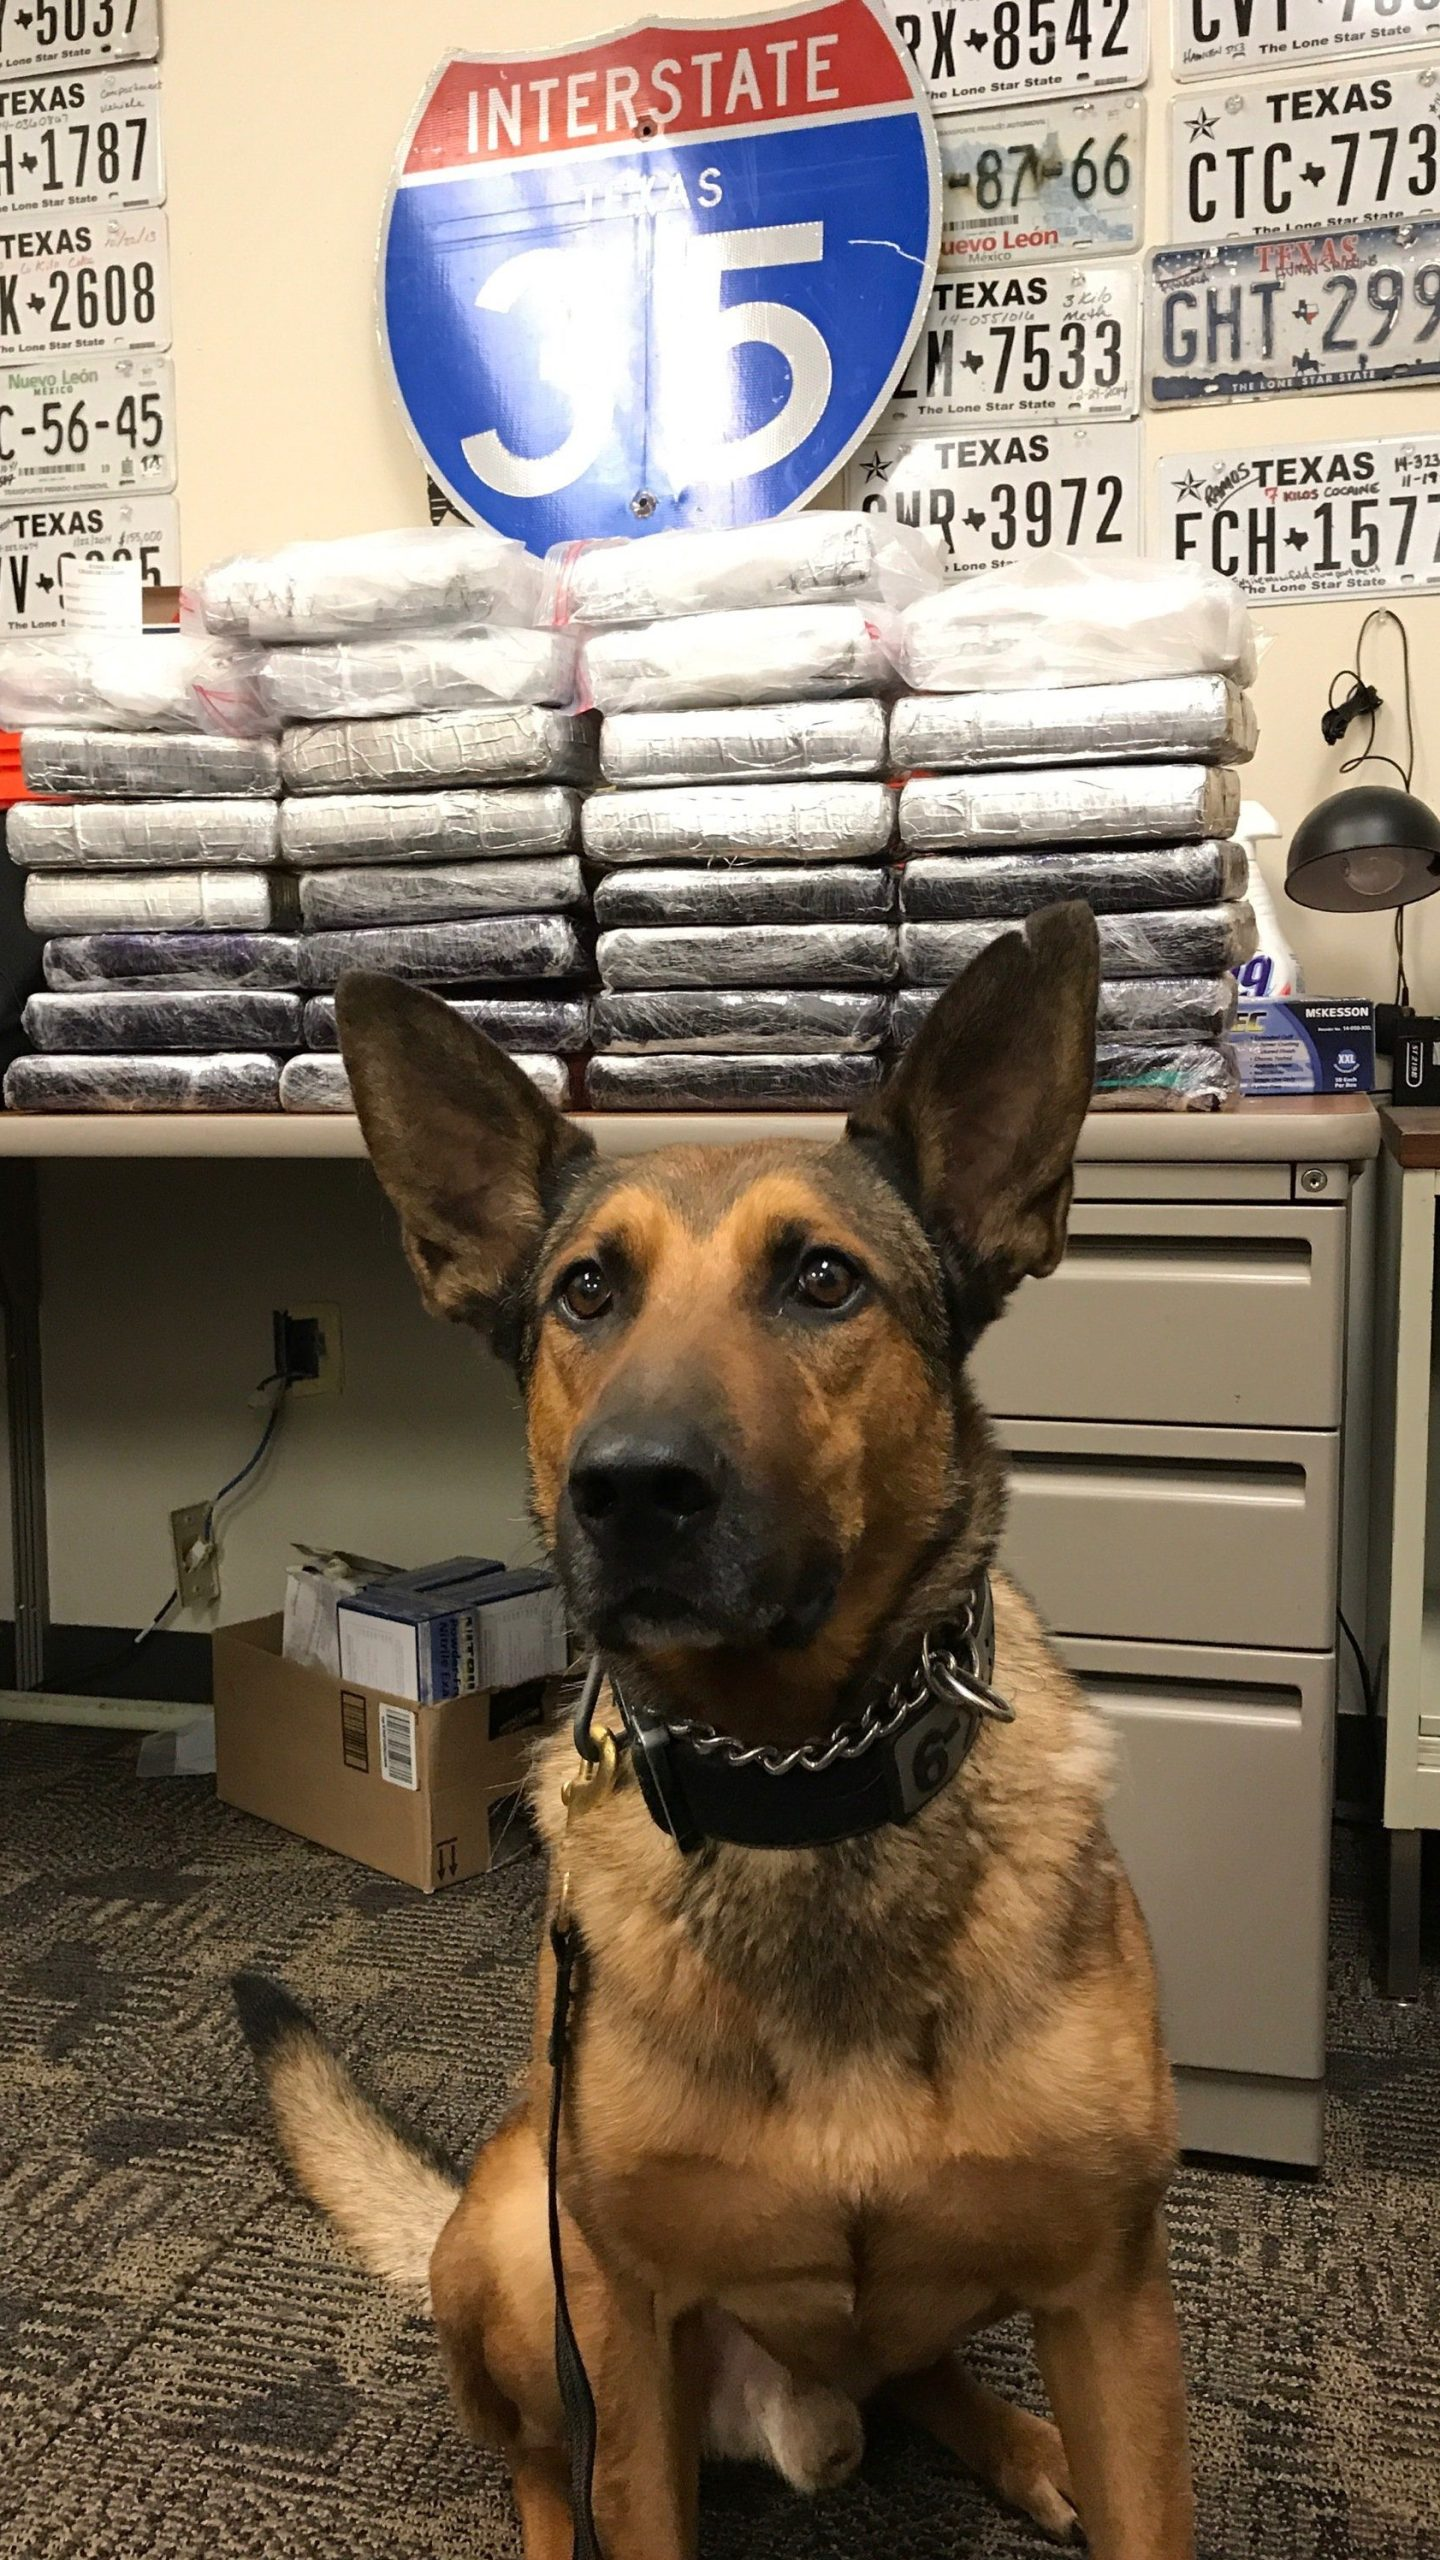 K9 Cuatro posing with the seized drugs. (Austin police photo)_484215